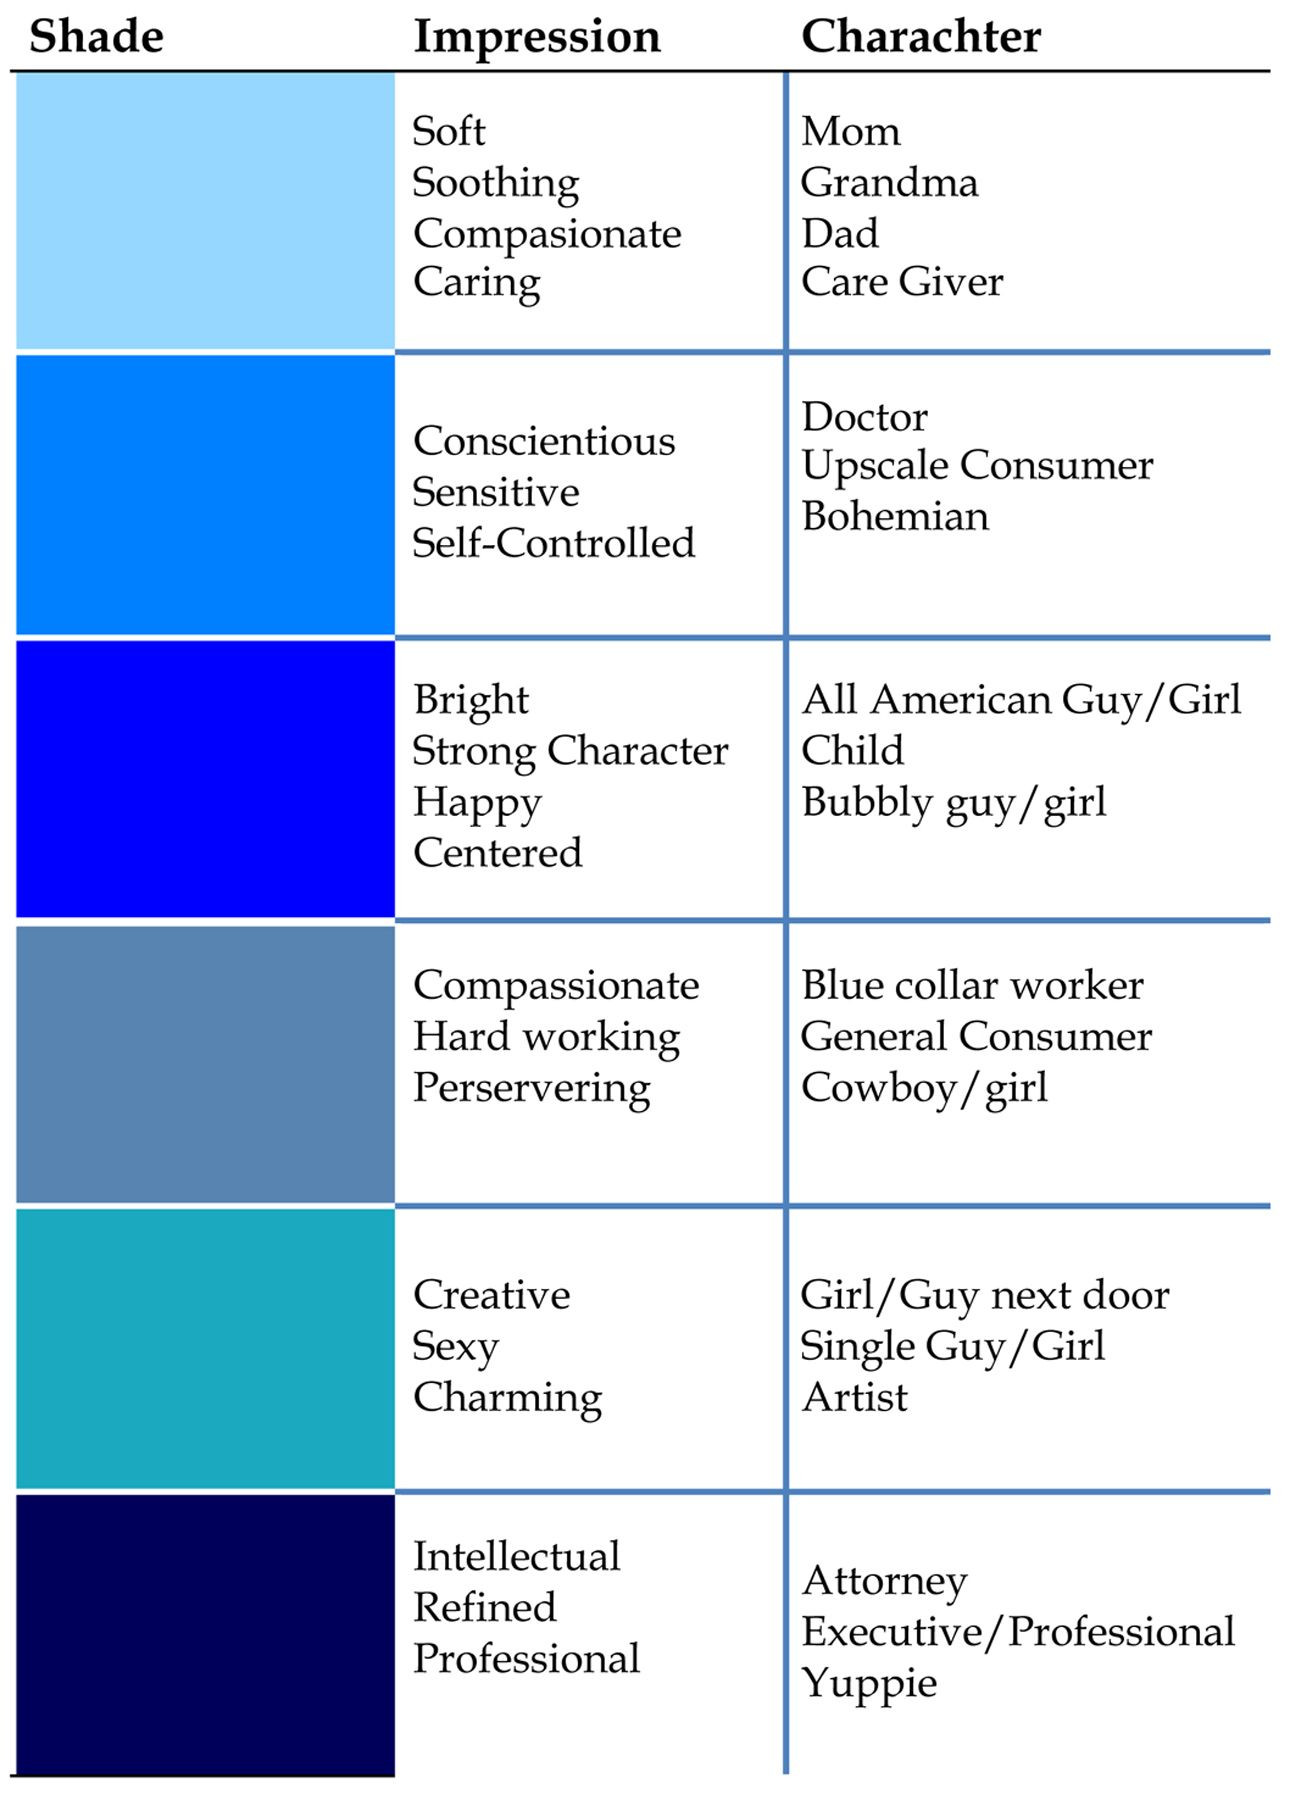 shades of blue - Shades Of Blue And Their Names